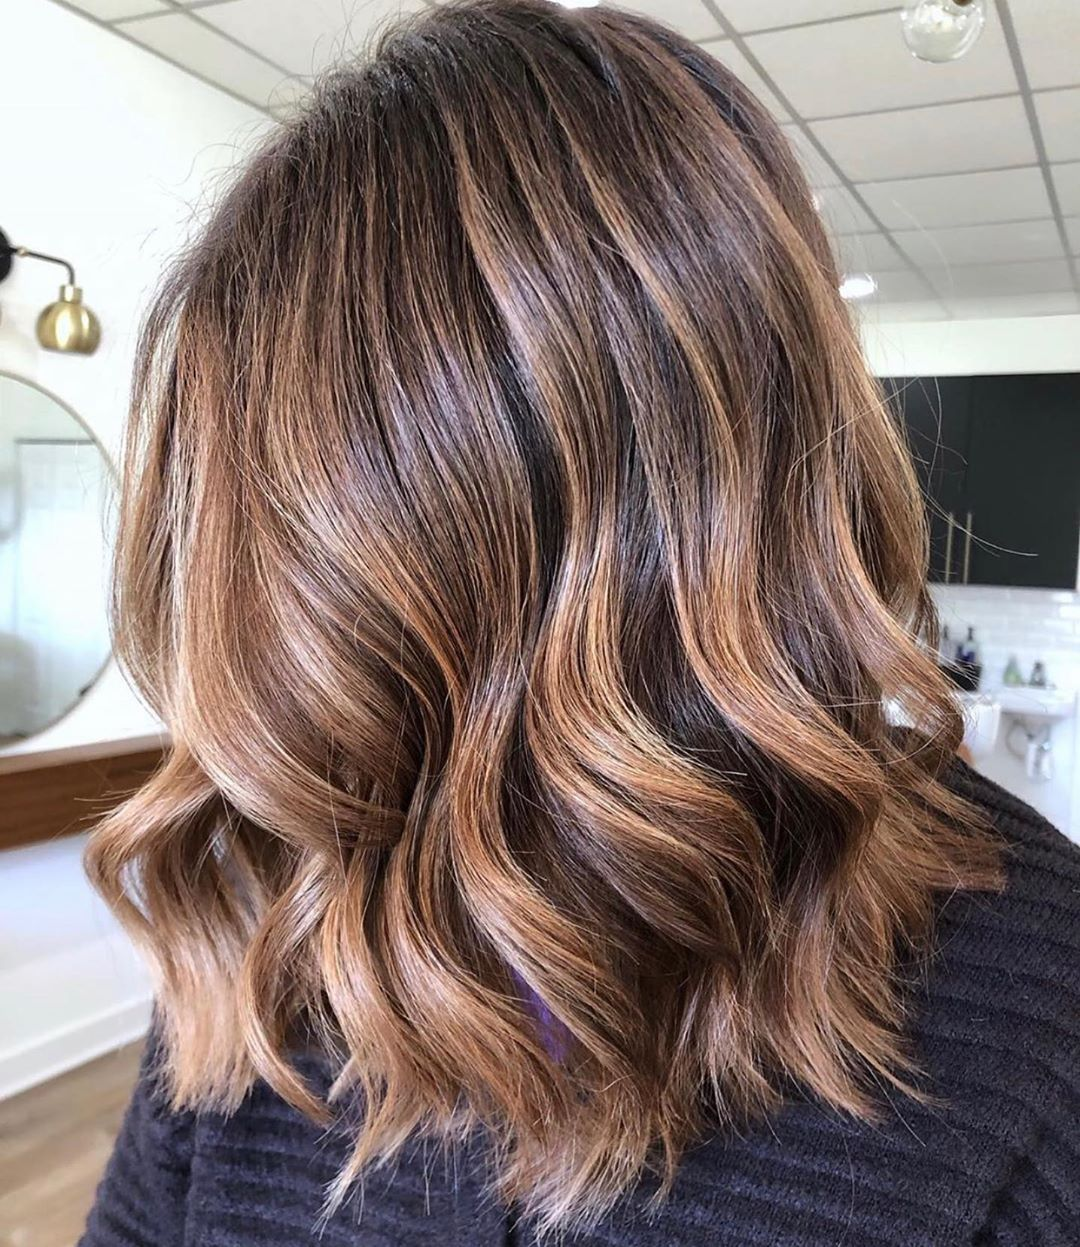 How To Do Instant Soft Beach Waves In 2020 Natural Wavy Hair Hair Color Balayage Honey Blonde Hair Color